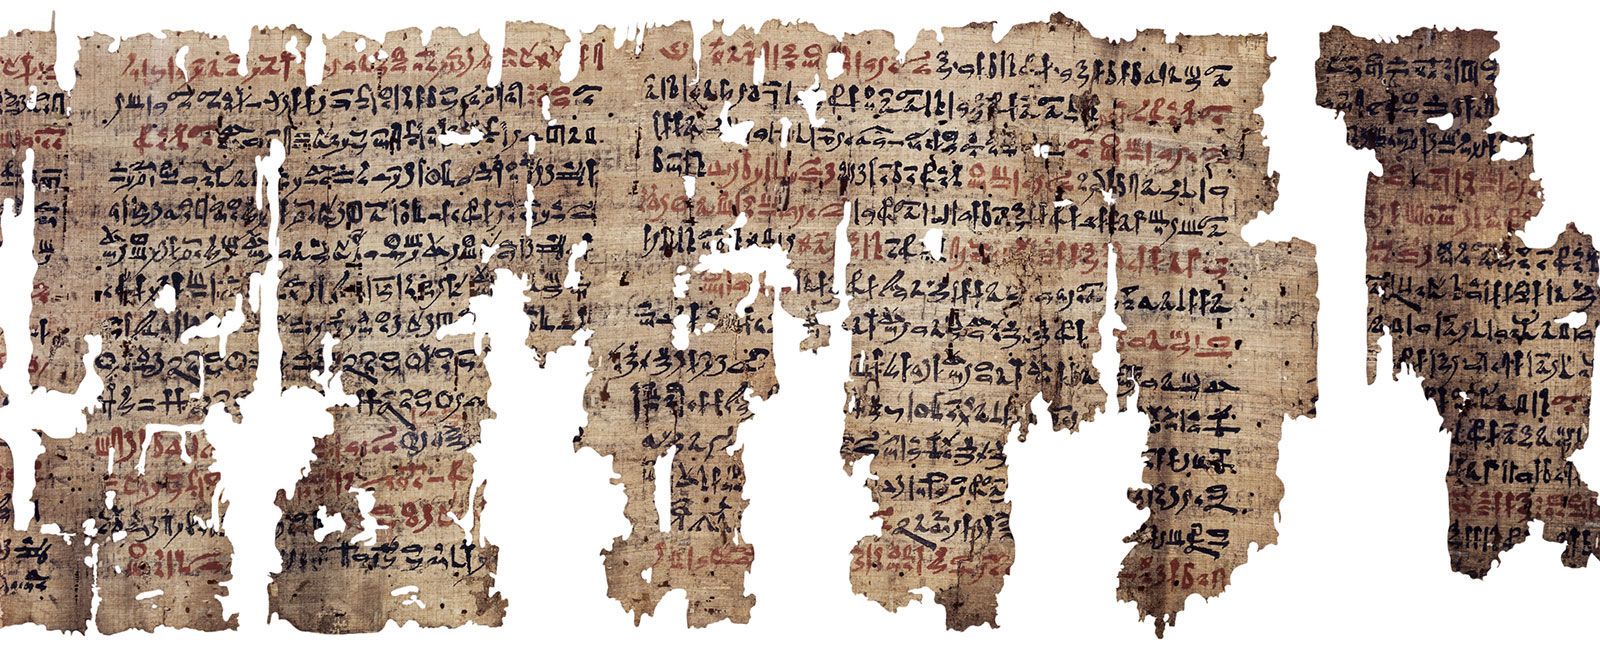 A flat papyrus scroll with ragged edges and many missing pieces, inked densely with letters in hieratic